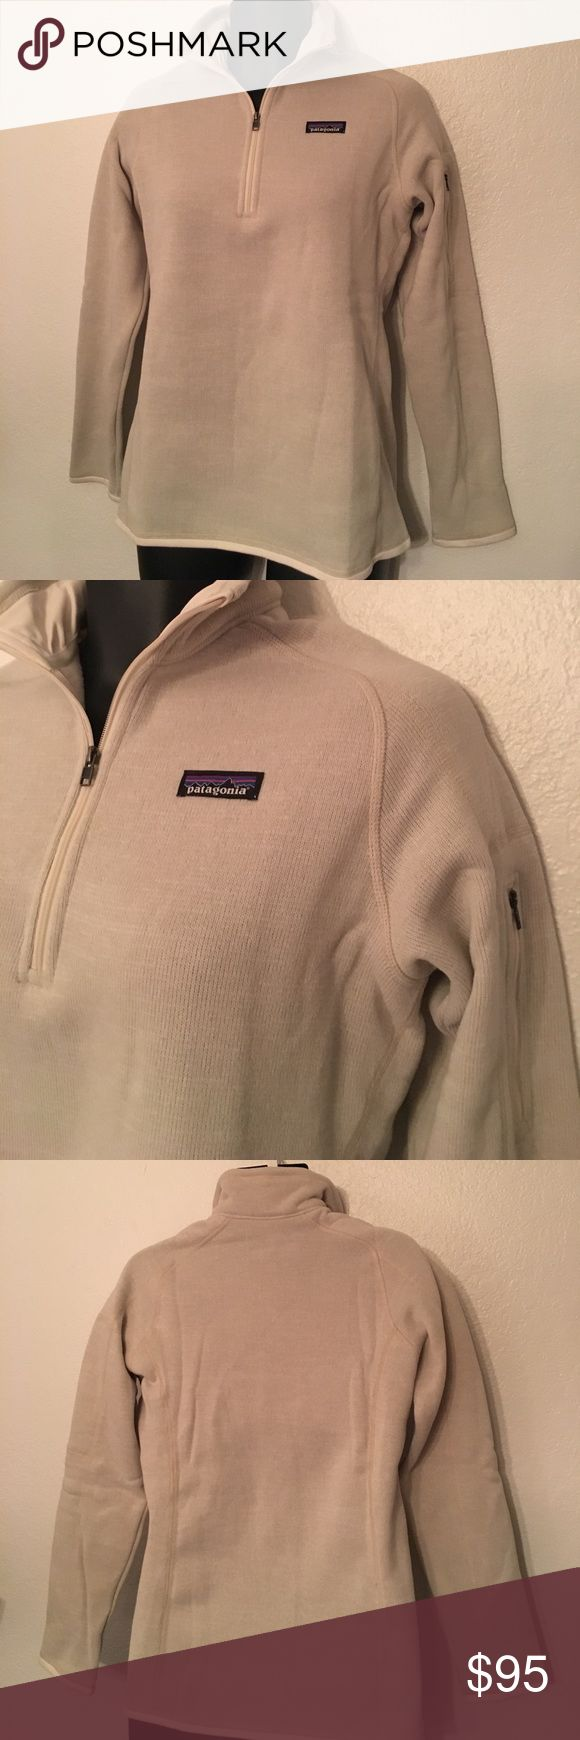 🆕NWT Patagonia Better Sweater Pullover This pullover is a fleece lined sweater pullover. Has a zipped pocket on the left arm and is a 3/4 zip front. NWT. Size L. Save on ✈️SHIPPING✈️and 🎁BUNDLE! I even give a discount on 3 or more regularly priced item bundles. I always accept reasonable offers with the offer button! 🚫❌Lowball offers please! Patagonia Jackets & Coats